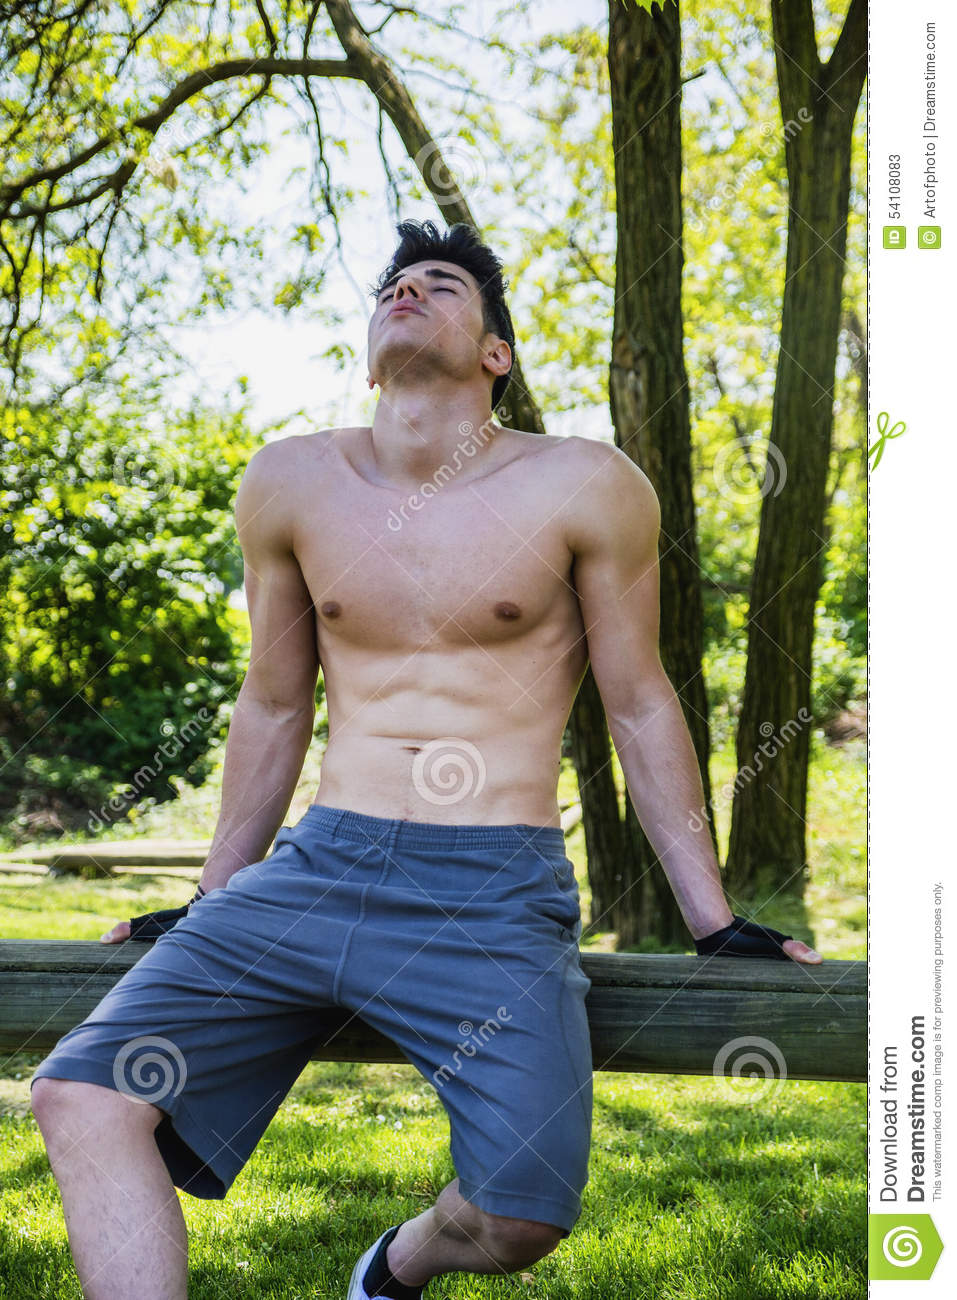 Shirtless athletic young man resting in city park